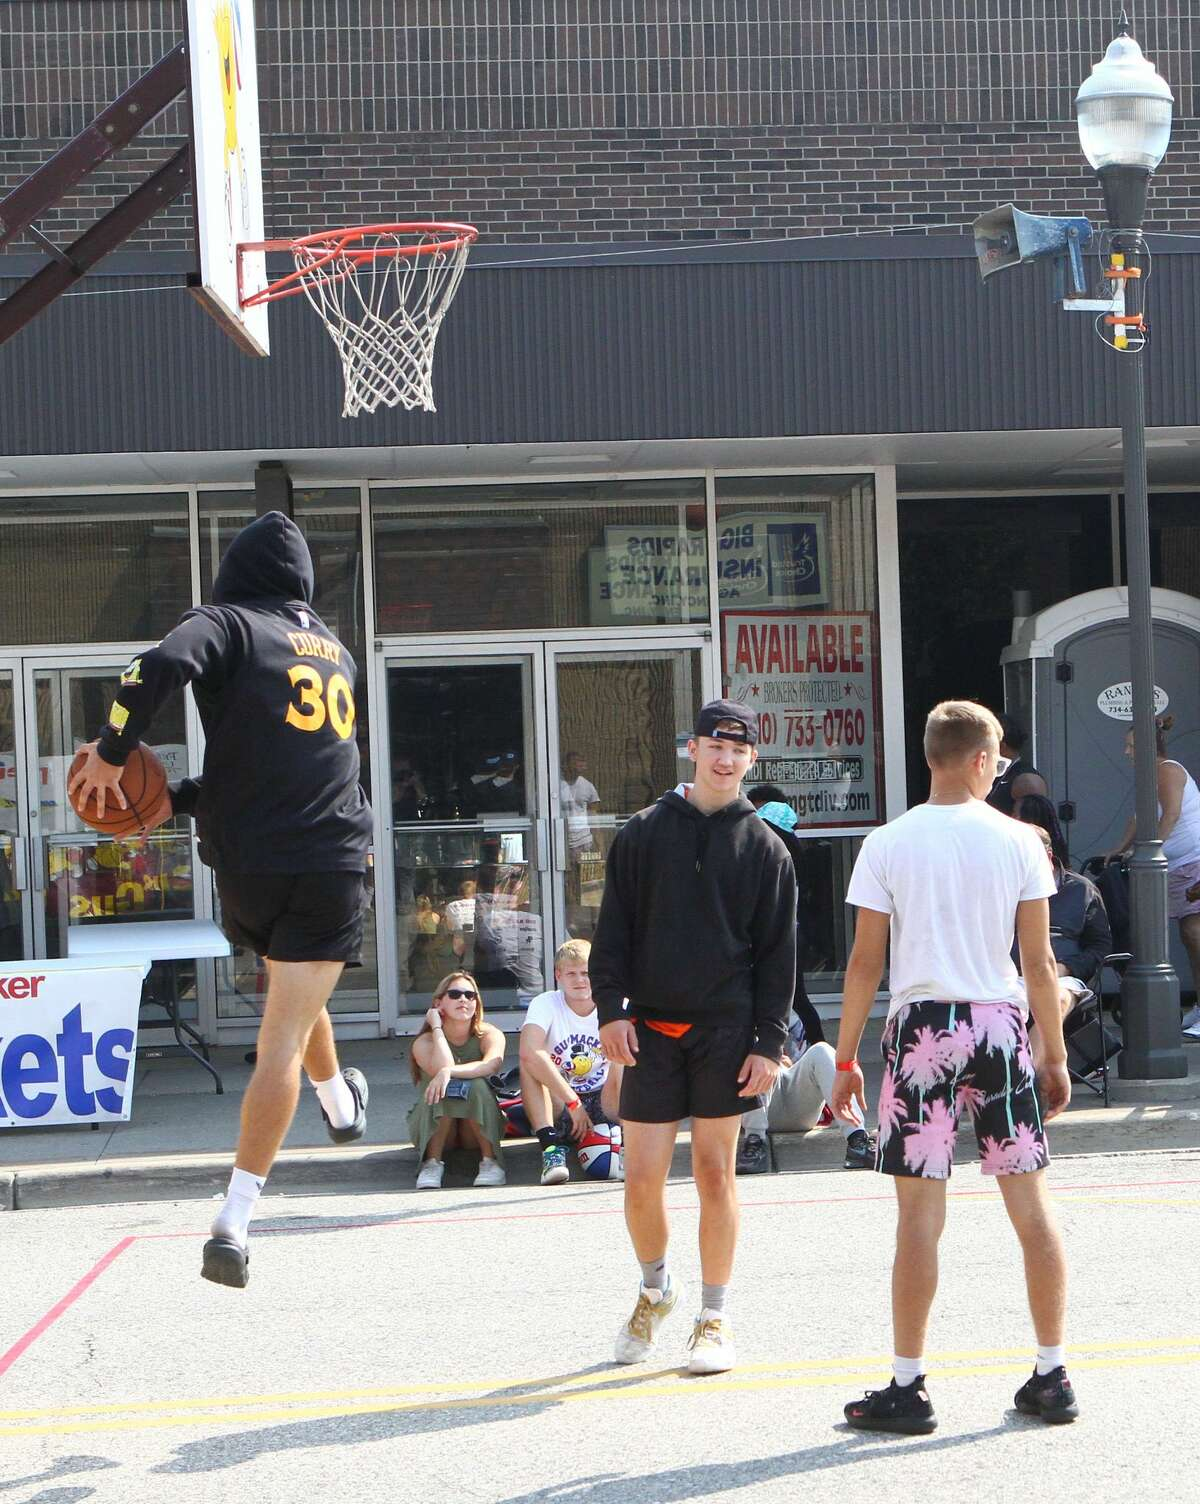 After last year's event was canceled due to the pandemic, the Gus Macker 3-on-3 Basketball Tournament returned to Big Rapids Saturday.